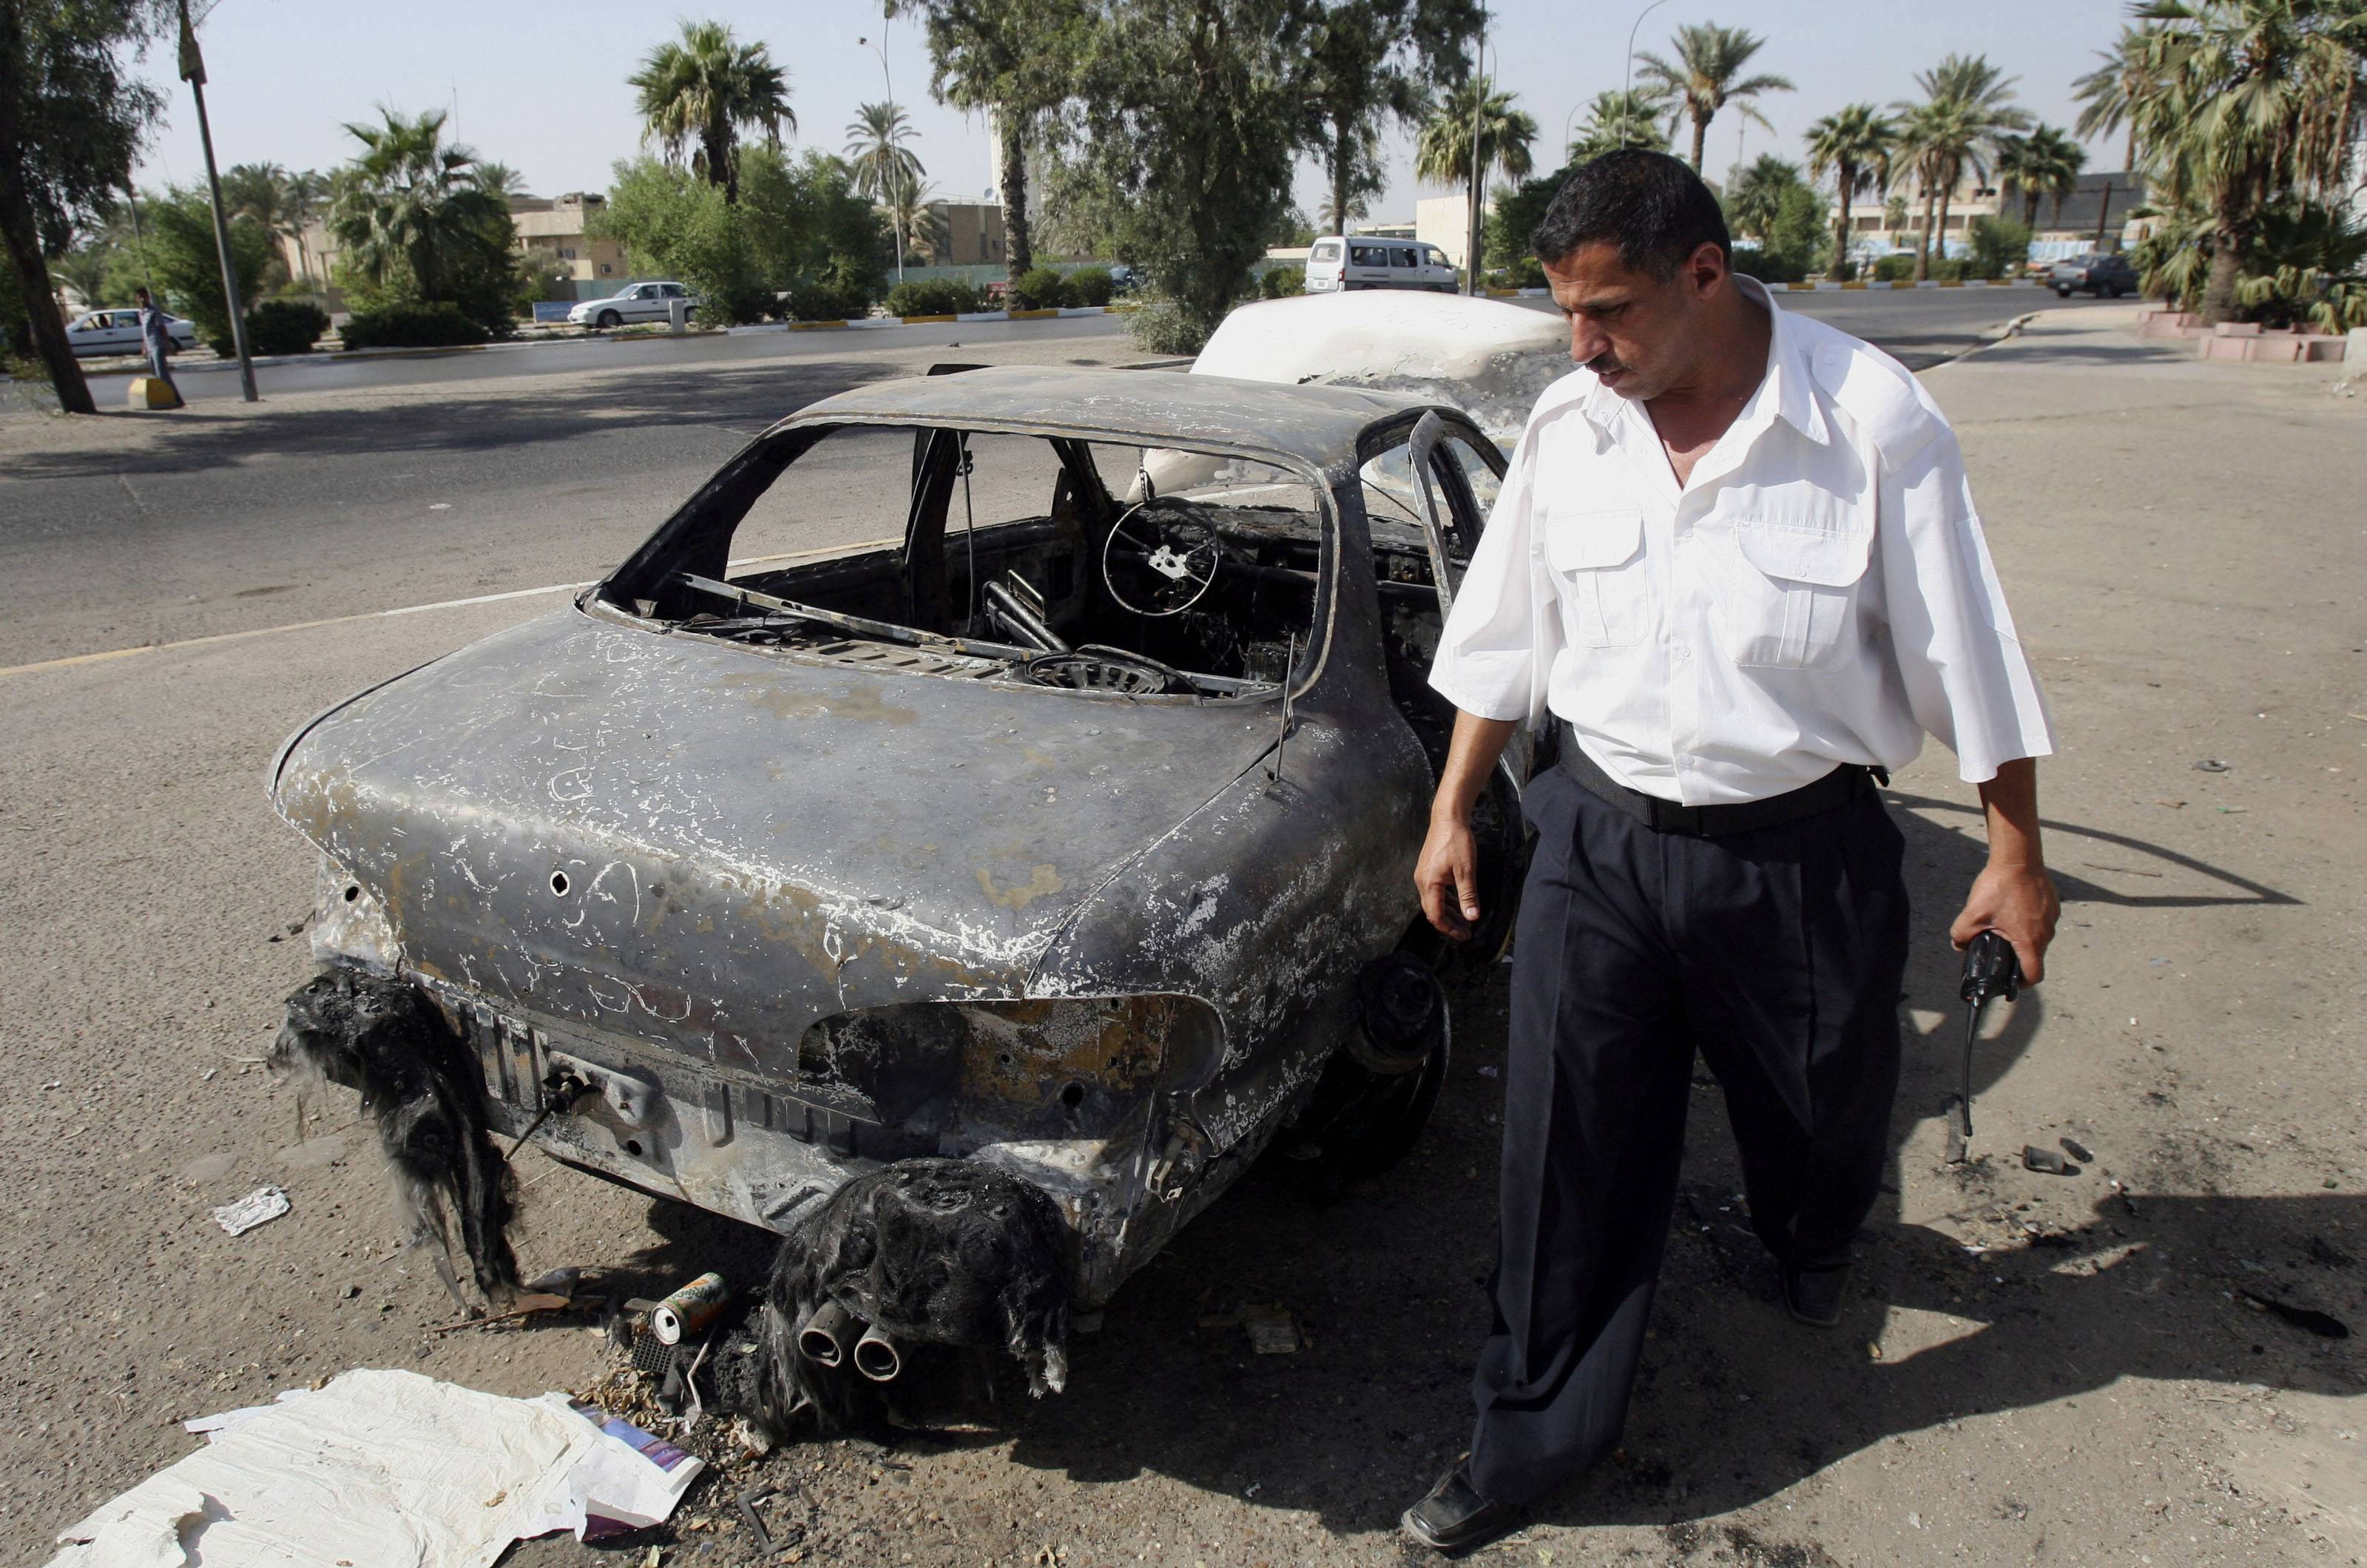 This Sept. 25, 2007 file photo shows an Iraqi traffic policeman inspects a car destroyed by a Blackwater security detail in al-Nisoor Square in Baghdad, Iraq. After years of delays, four former guards from the security firm Blackwater Worldwide are facing trial in the killings of 14 Iraqi civilians and the wounding of 18 others in bloodshed that inflamed anti-American sentiment around the globe. Whether the shootings were self-defense or an unprovoked attack, the carnage of Sept. 16, 2007 was seen by critics of the George W. Bush administration as an illustration of a war gone horribly wrong. A trial in the nearly 7-year-old case is scheduled to begin wi